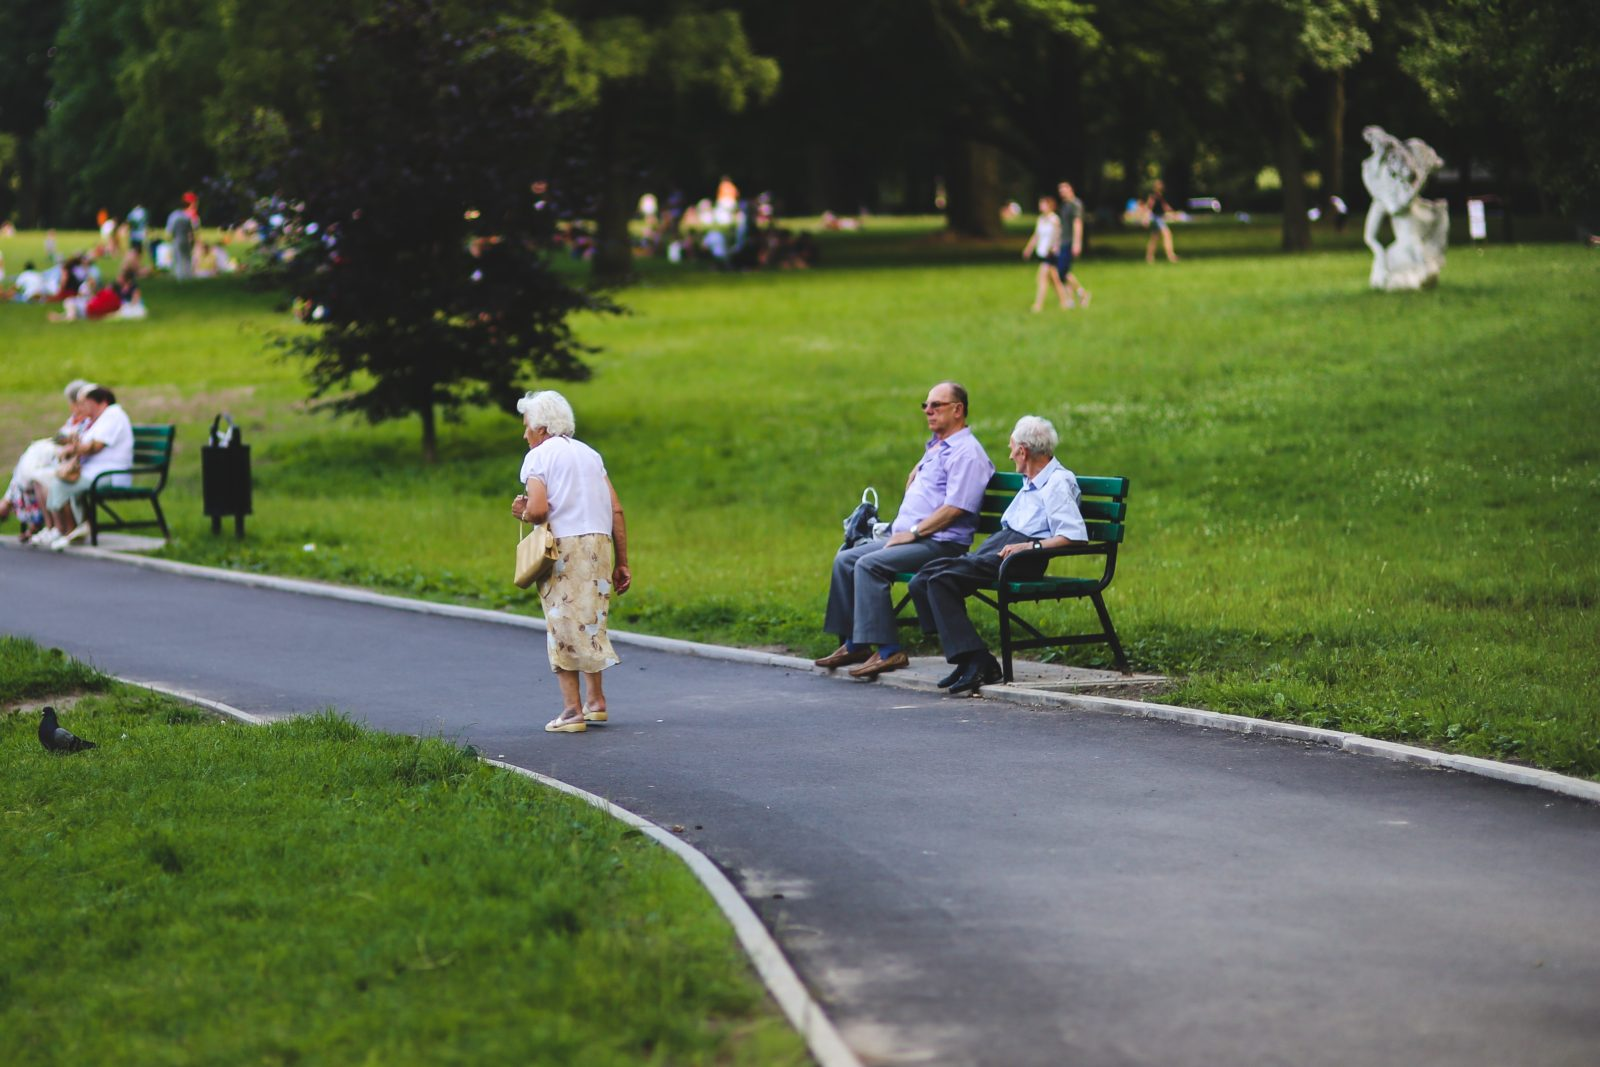 Seniors sitting on a bench at a public park on a nice day